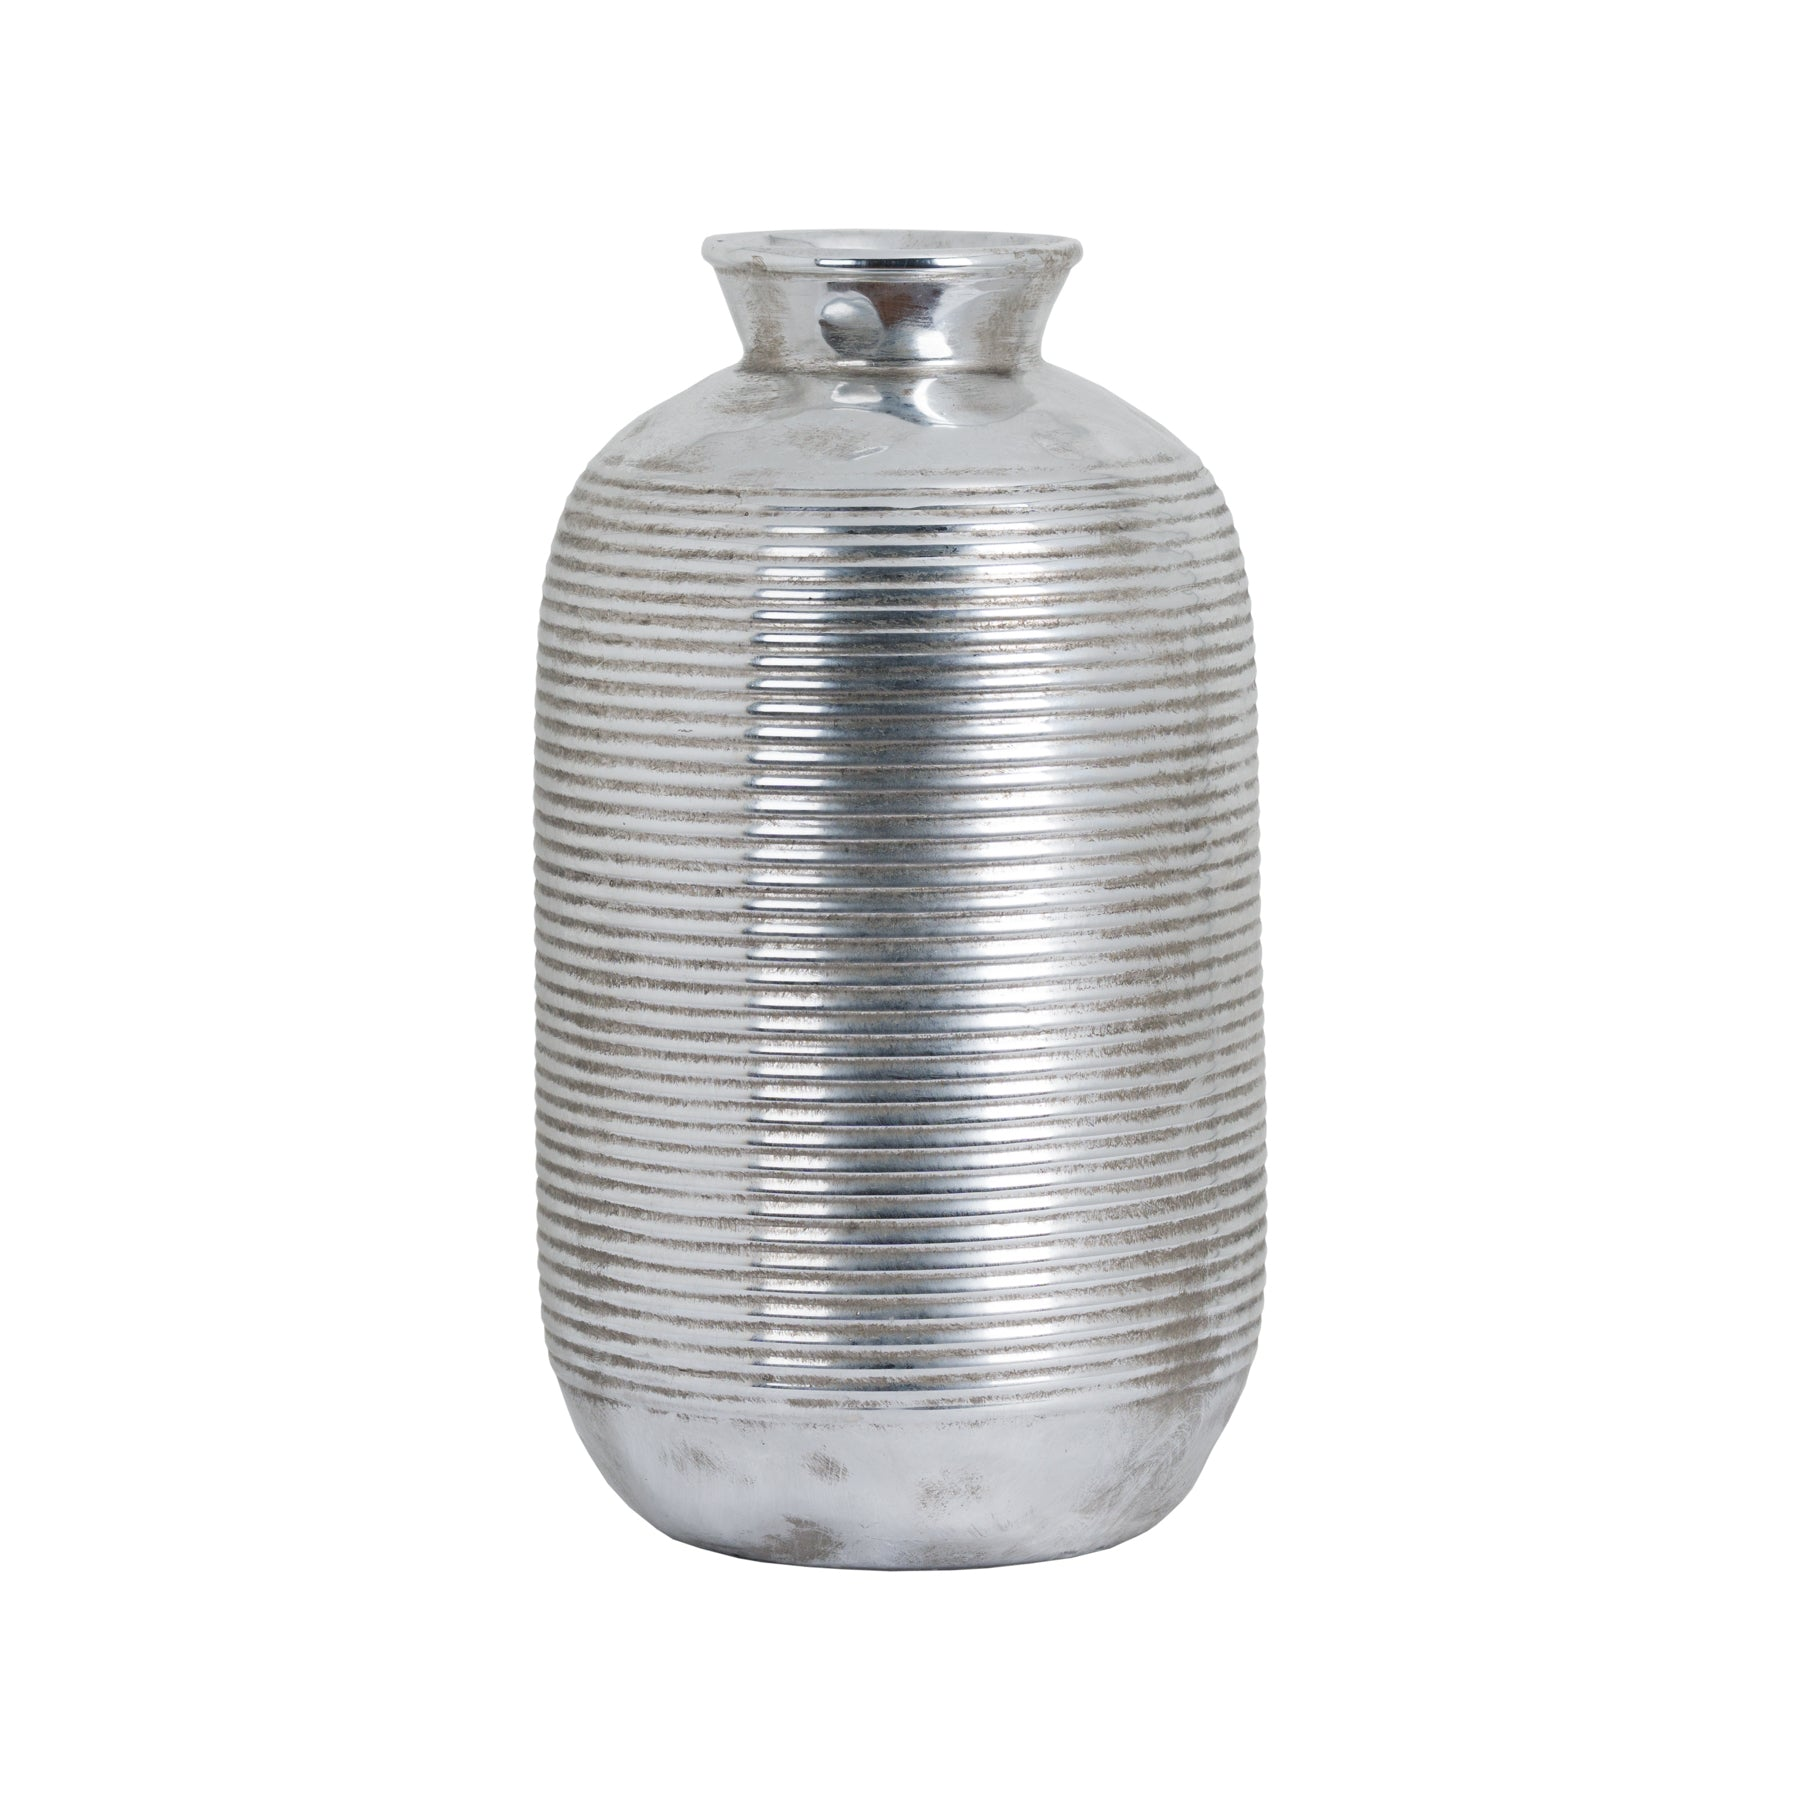 Metallic Ceramic Cylindrical Case with Raised Neck